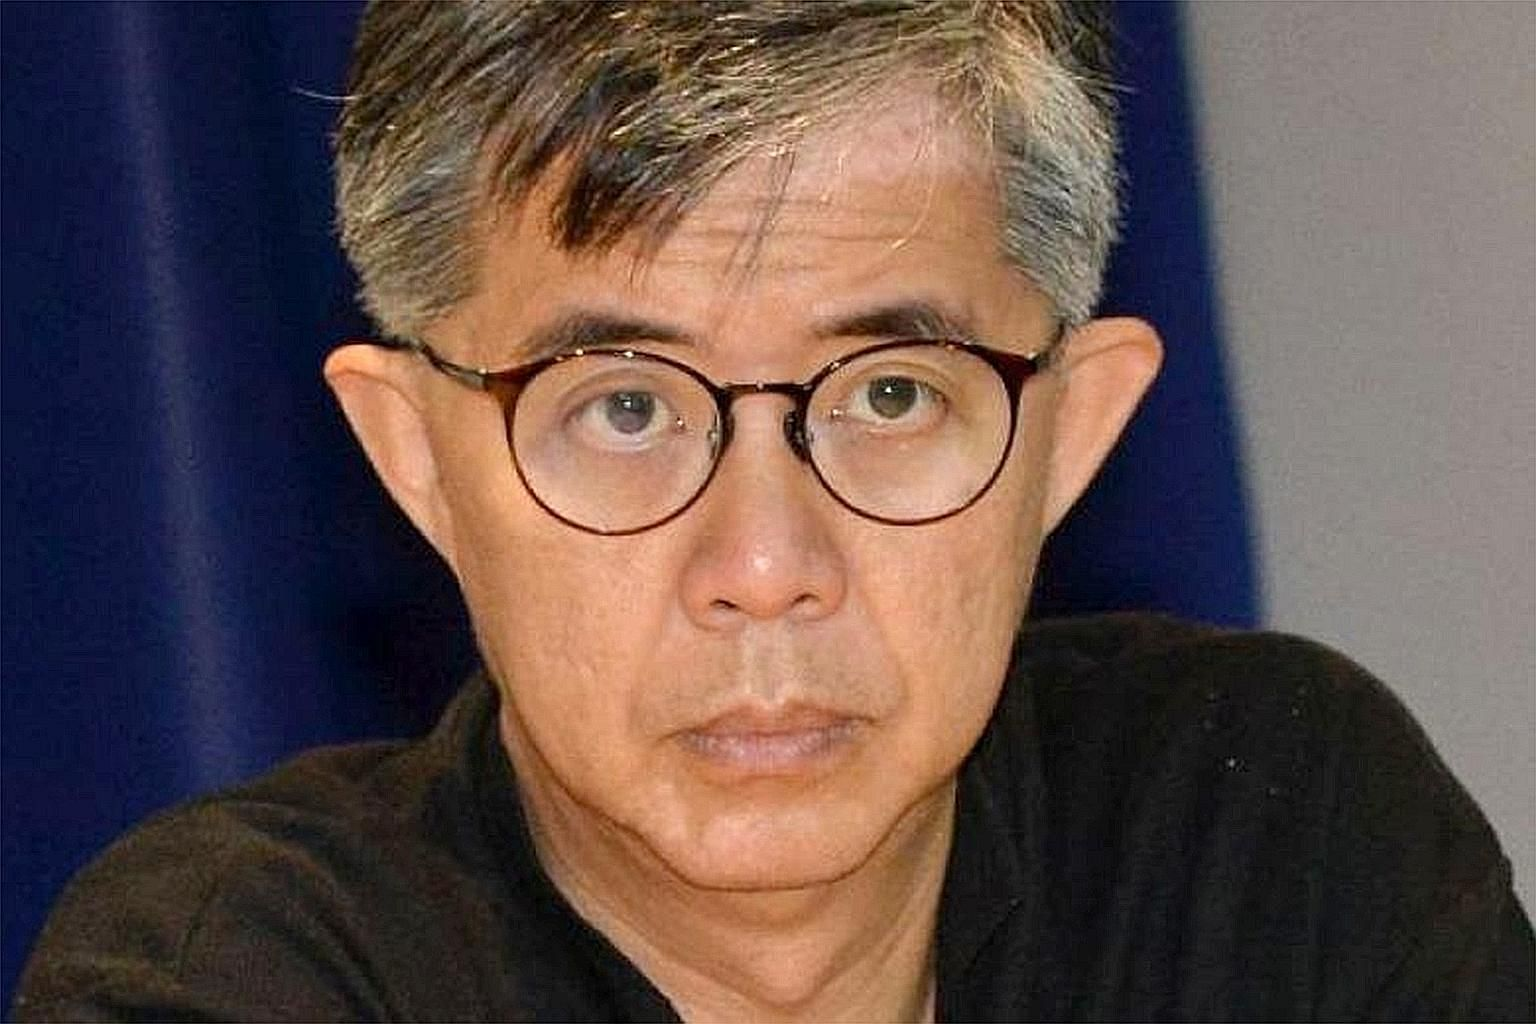 Mr Tian Chua was disqualified from defending his Batu seat by an election official over a RM2,000 fine.